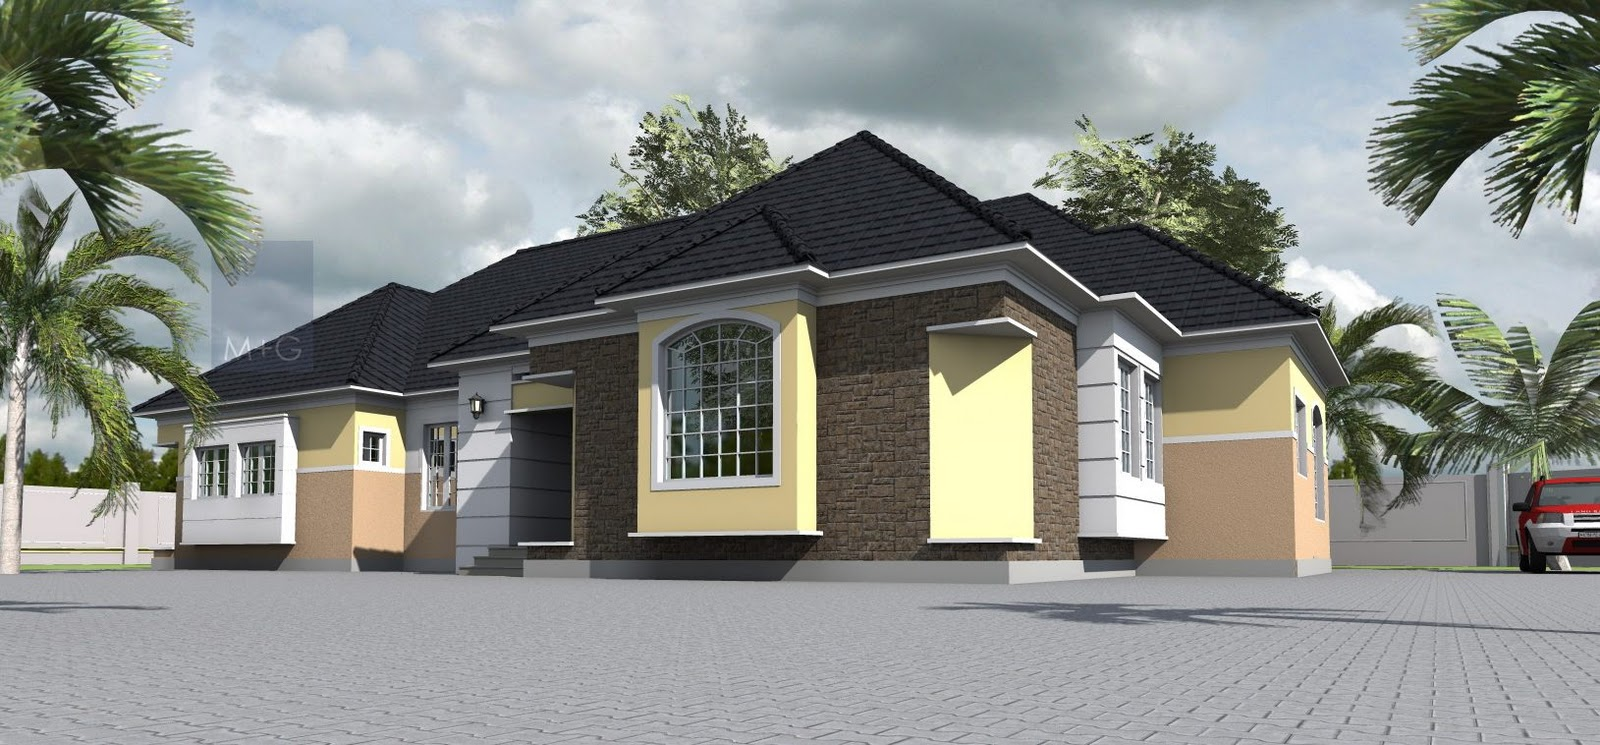 6 bedroom bungalow house plans in nigeria for New bungalow style homes